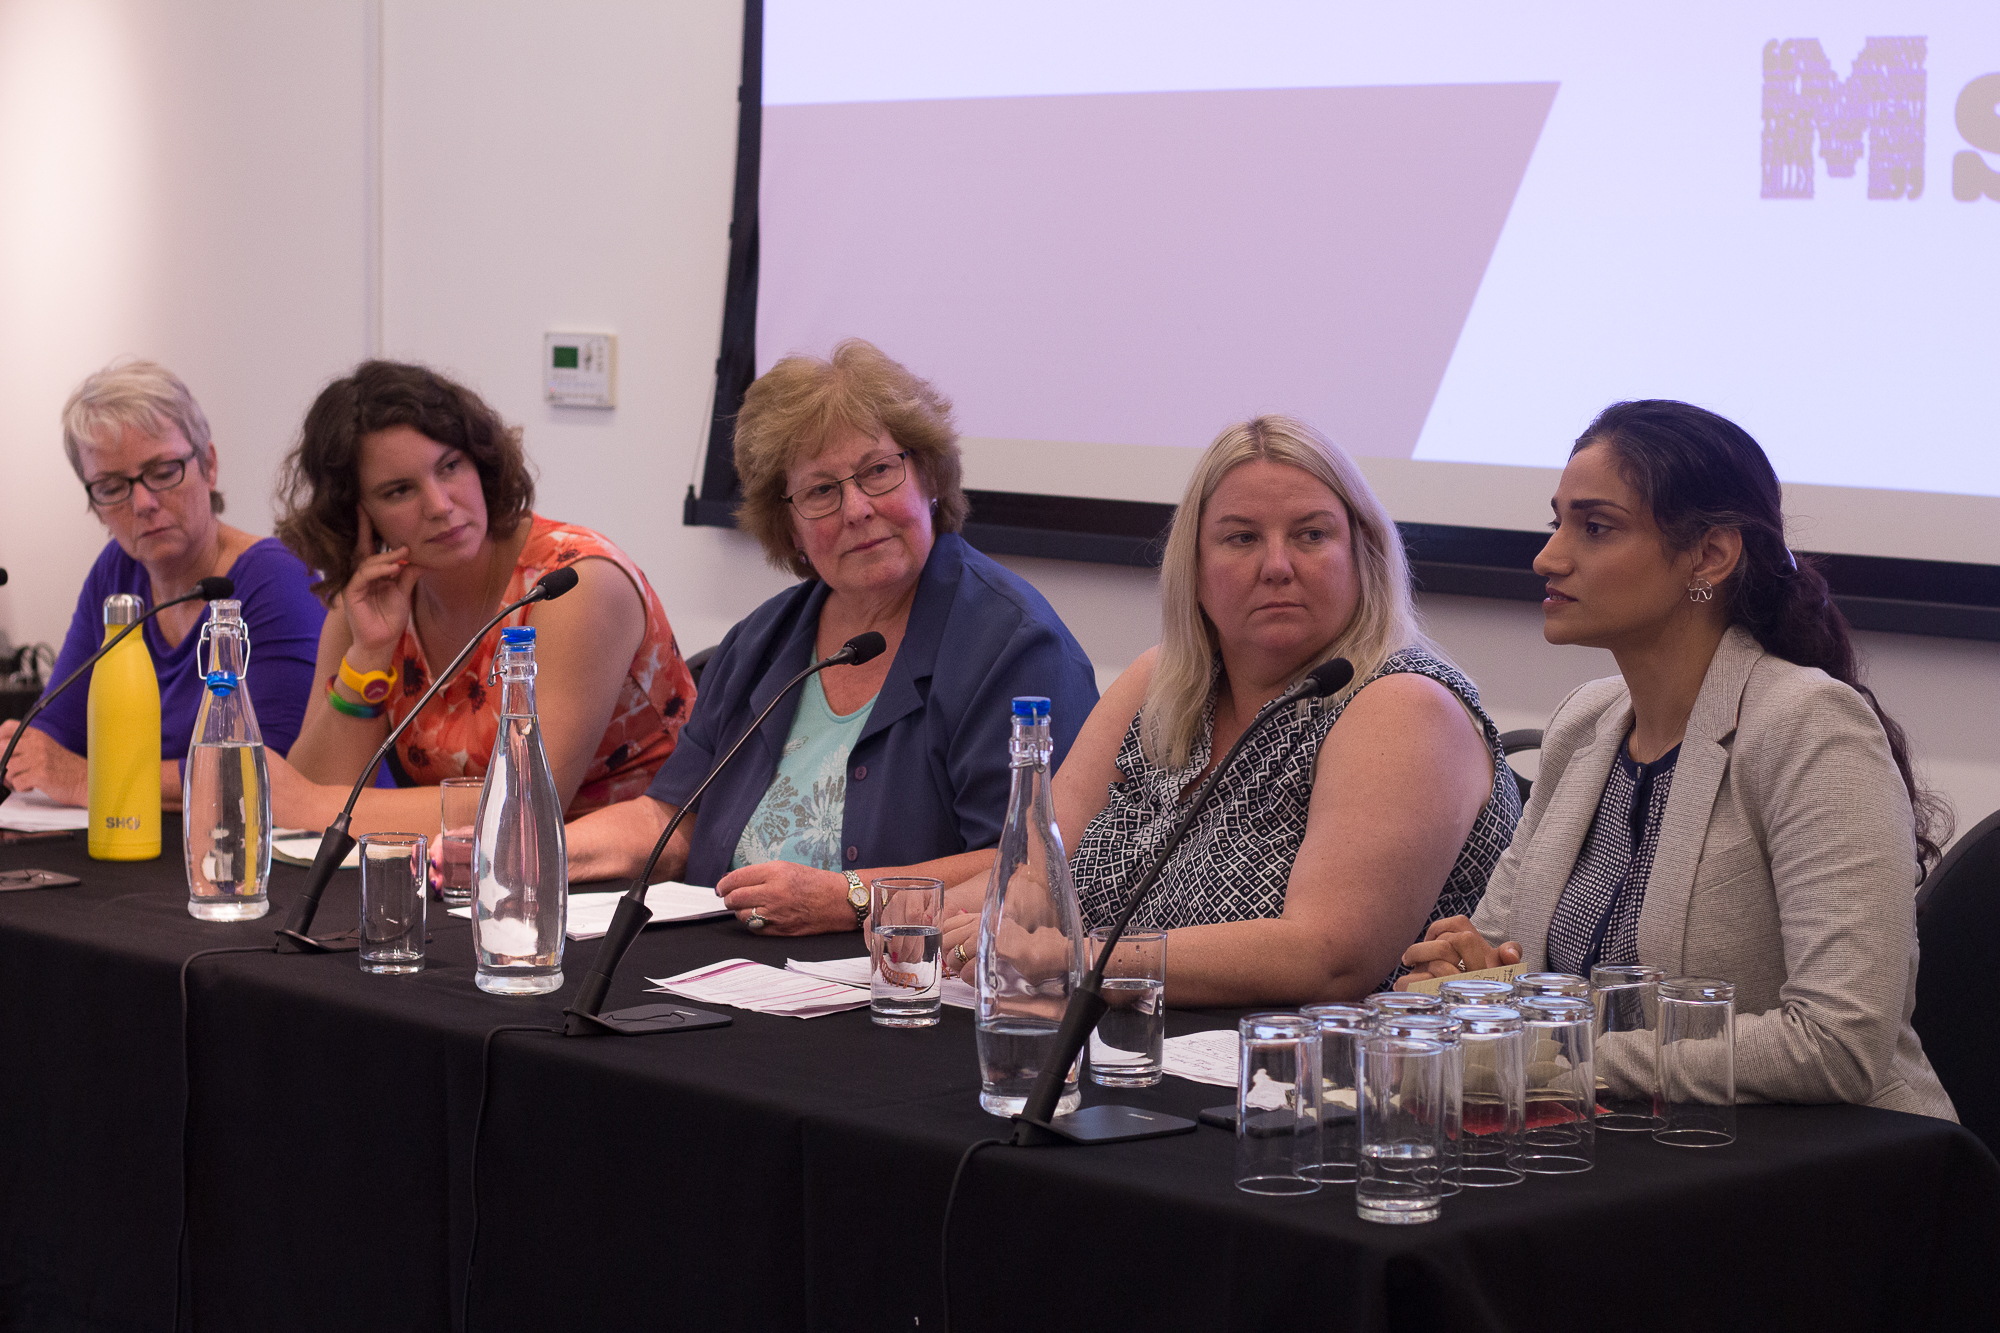 Discussing the Politics and Economics of Women in Trade at the M Shed.